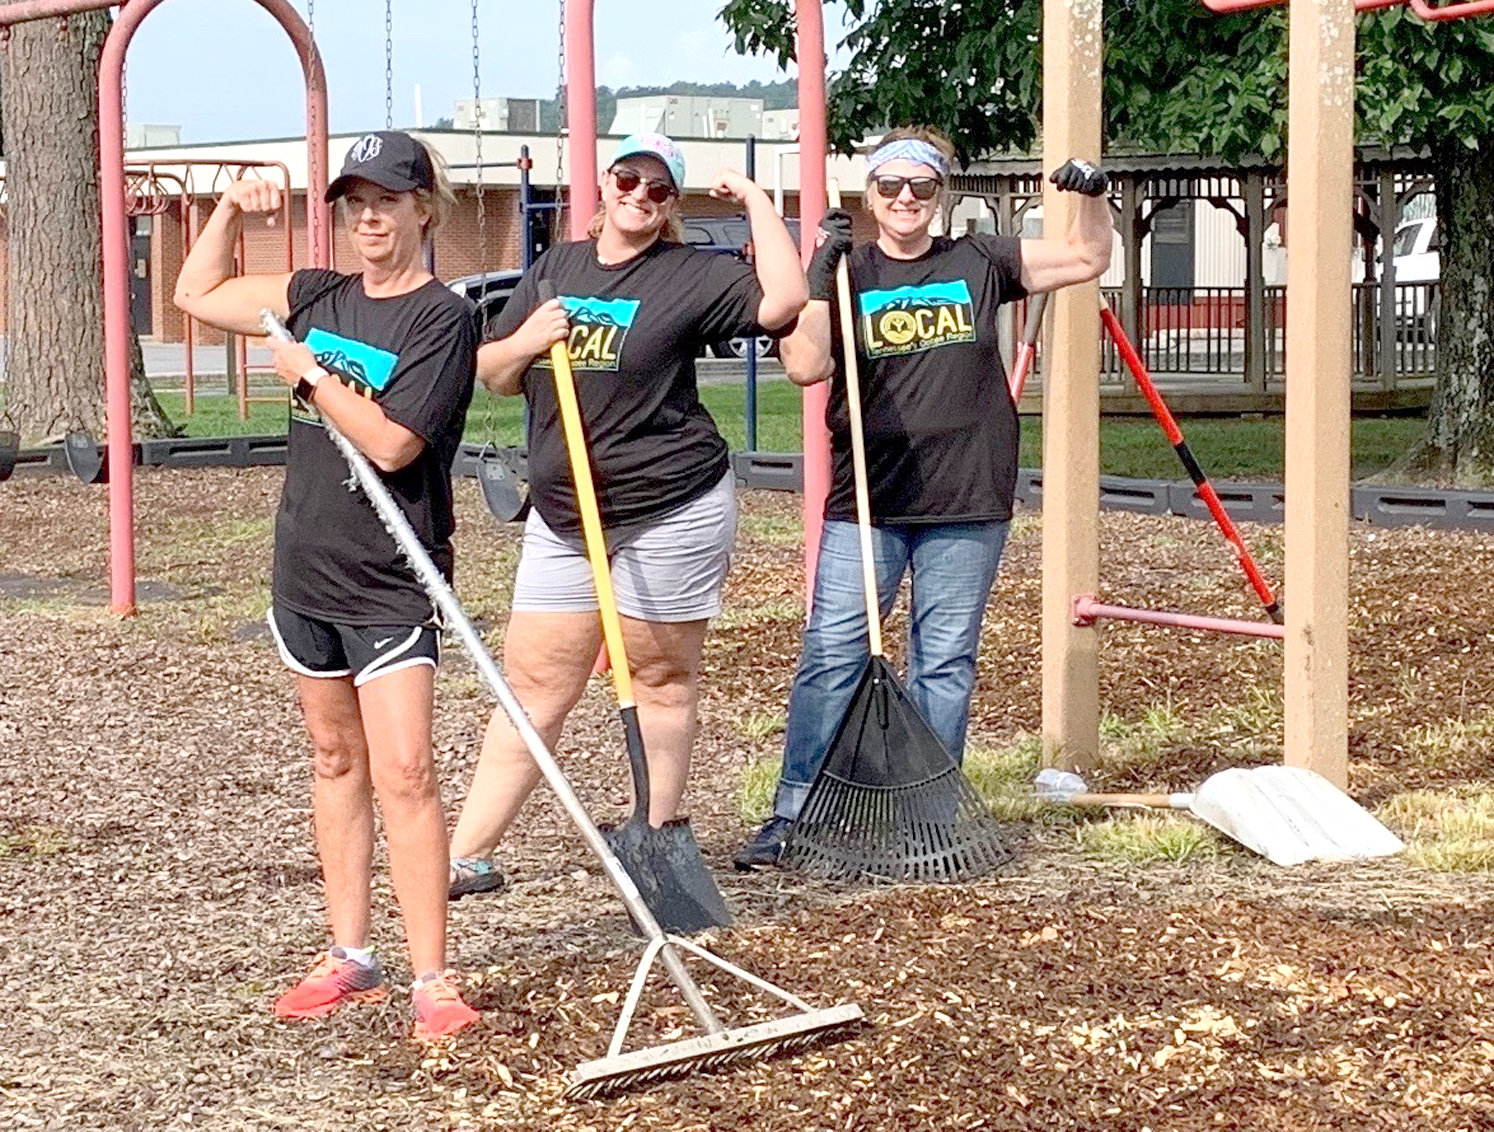 A team of volunteers from Whirlpool in Cleveland take a break from mulching the playground at Taylor Elementary School to show off their muscles. The project was part of a county-wide effort to help nonprofits during the United Way Day of Action.